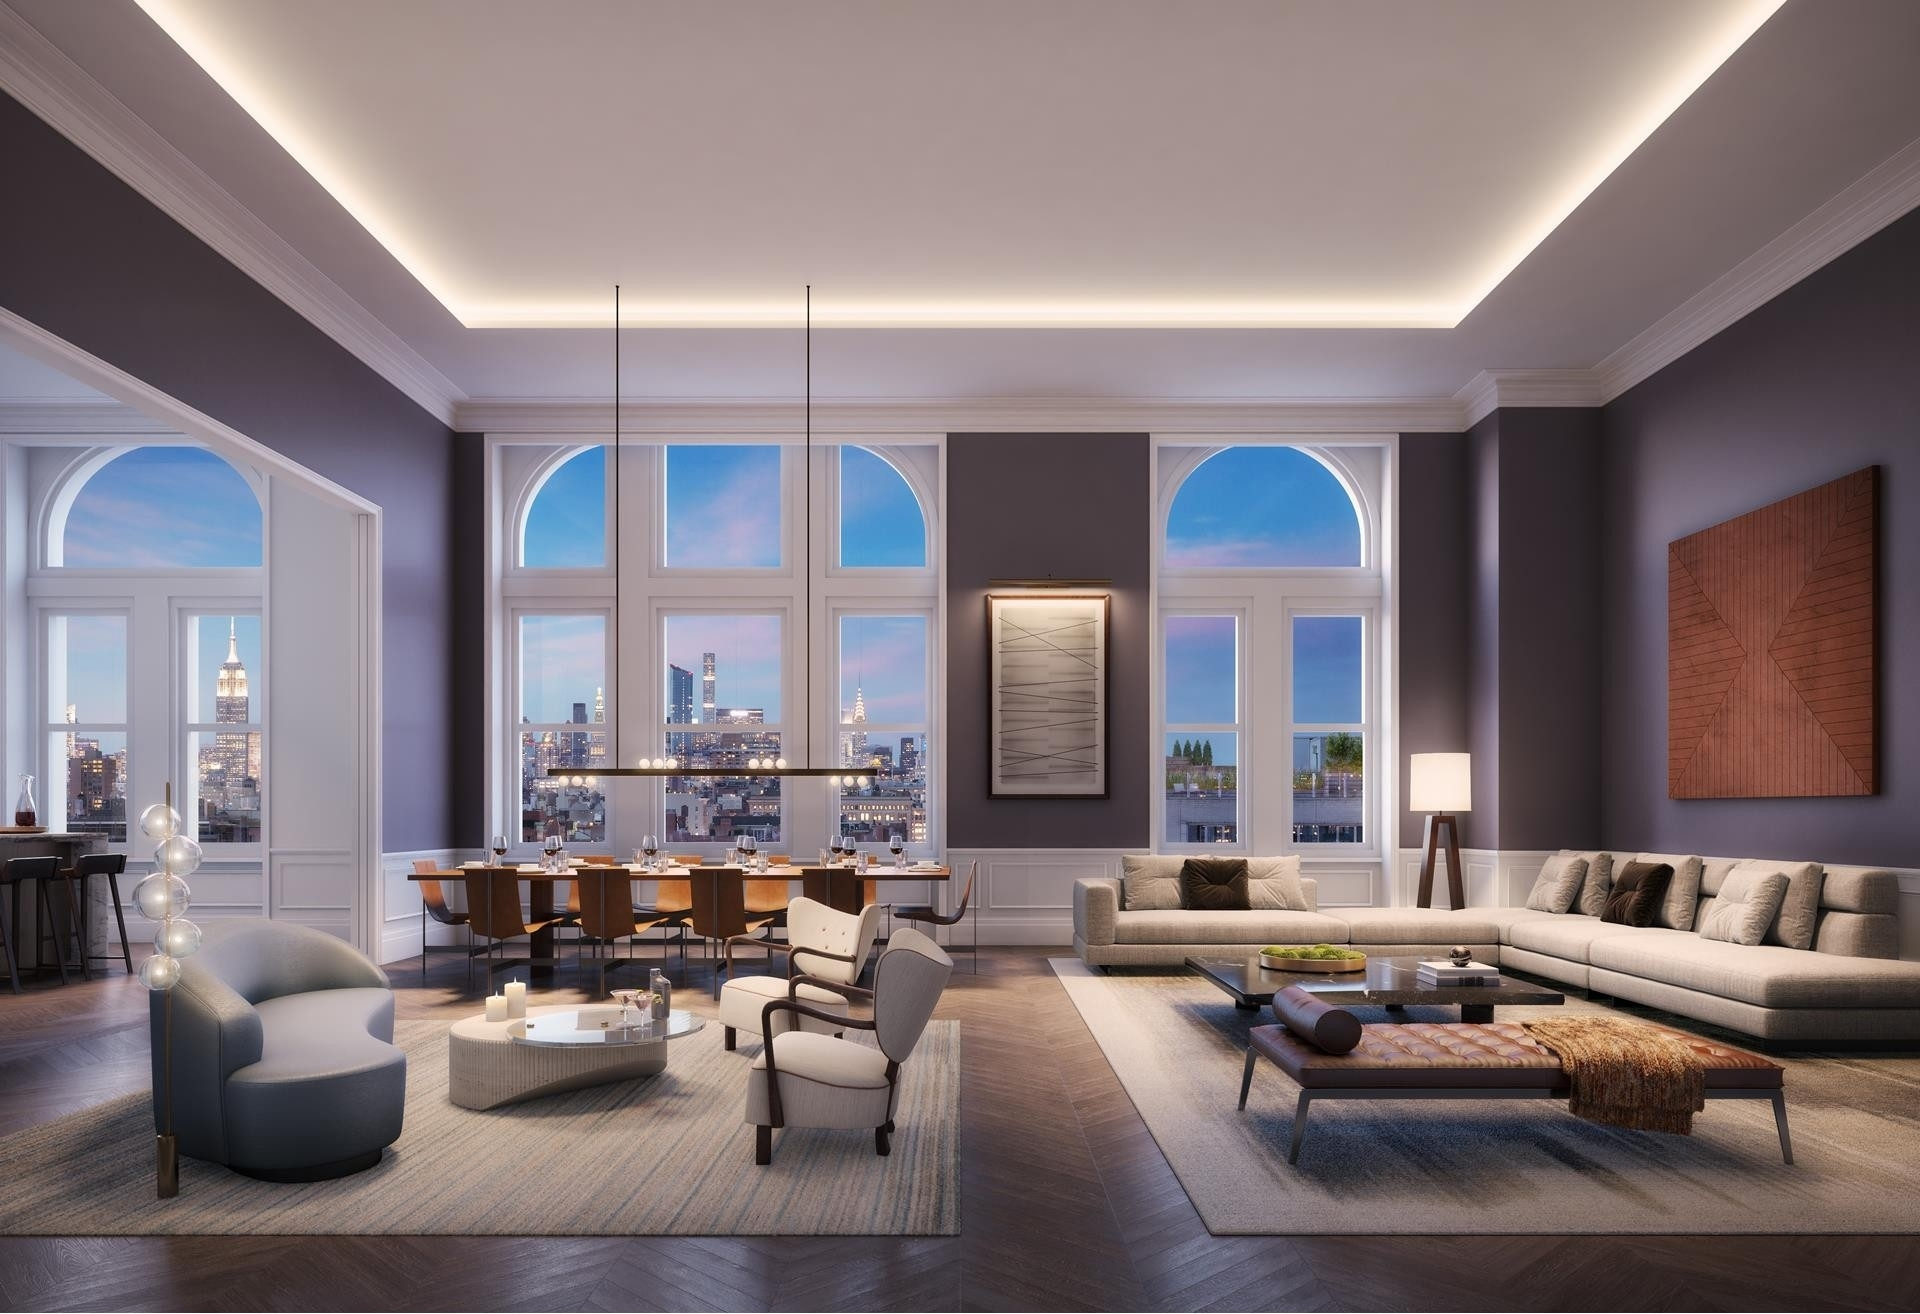 Property at 108 Leonard St, 14C TriBeCa, New York, NY 10013